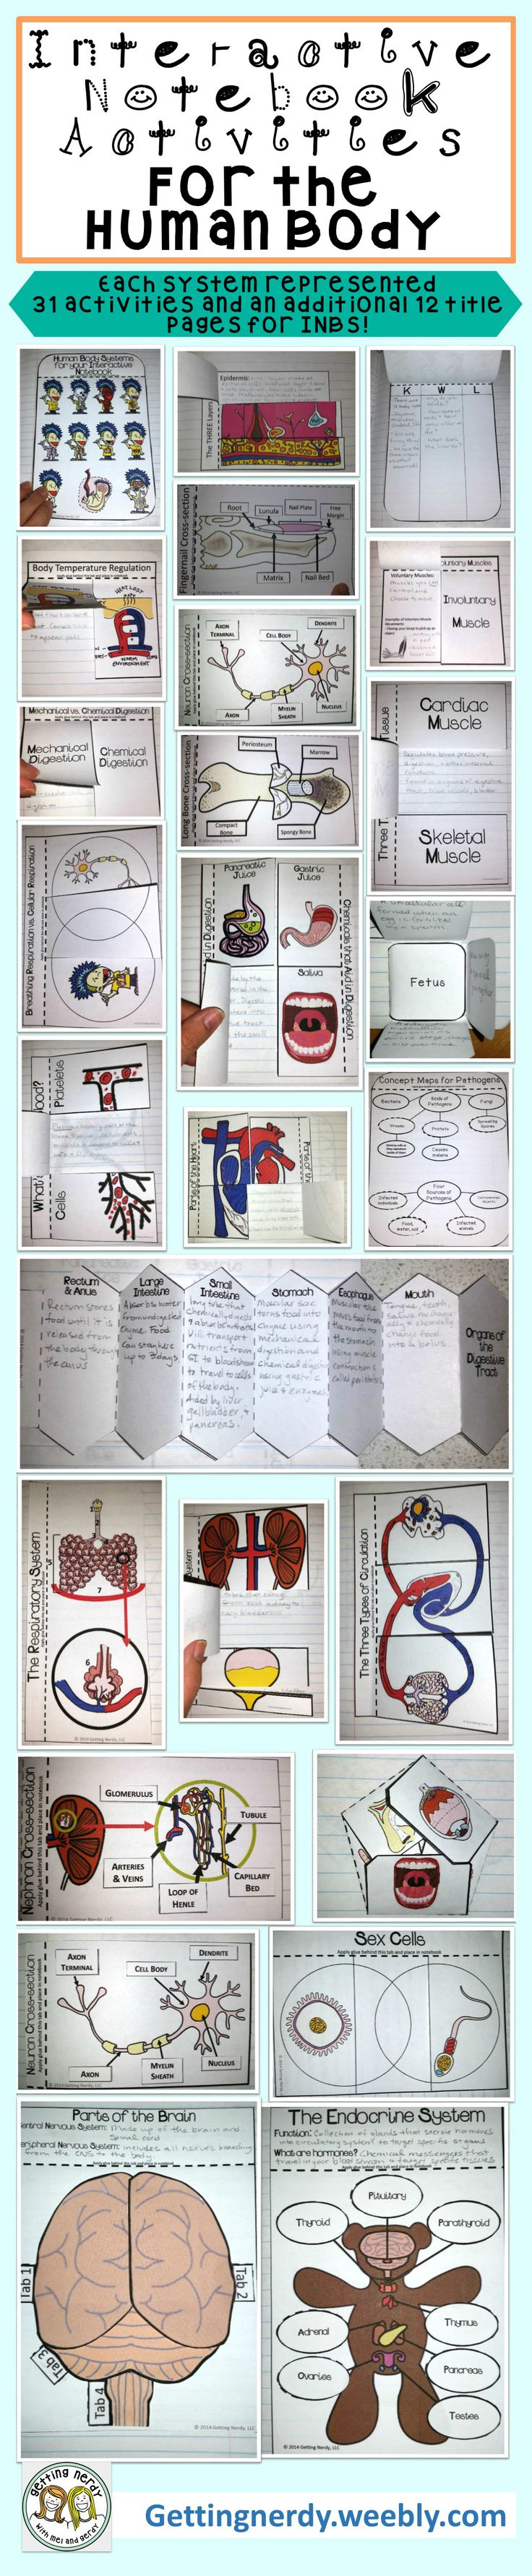 247 best images about anatomy class ideas on pinterest homeschool respiratory system and. Black Bedroom Furniture Sets. Home Design Ideas